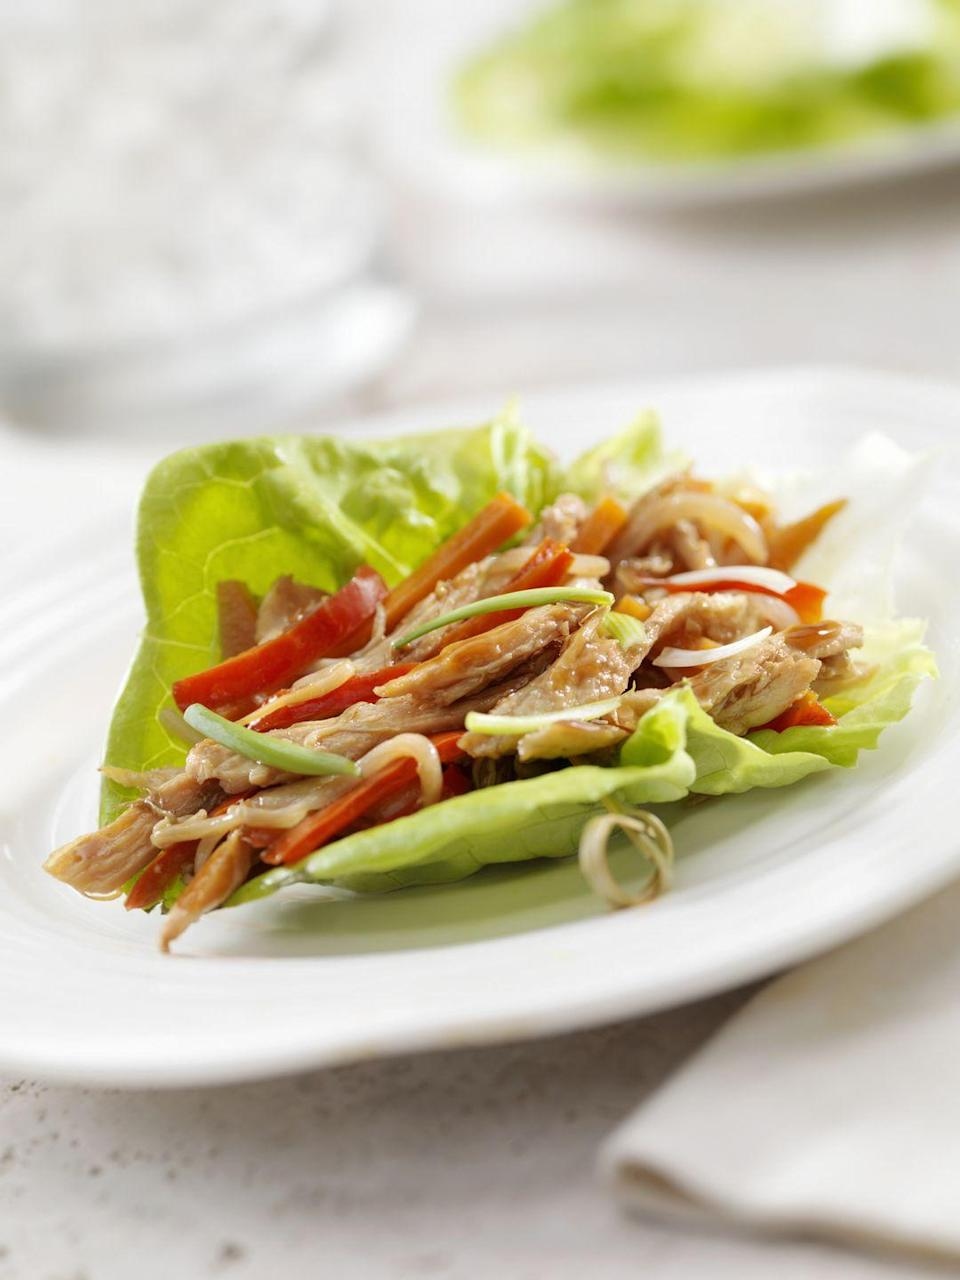 """<p> To make spring rolls Whole 30-compliant, skip the usual wrappers, says Kelsey Rosenbaum, RD at Sodexo. """"Lettuce wraps are a great Whole30 compliant alternative to rice paper wrappers. I like to prep 4-5 different vegetables, a protein, and a Whole30 compliant dipping sauce ahead of time,"""" says Rosenbaum. They're also family-friendly and quick and easy to assemble.</p>"""